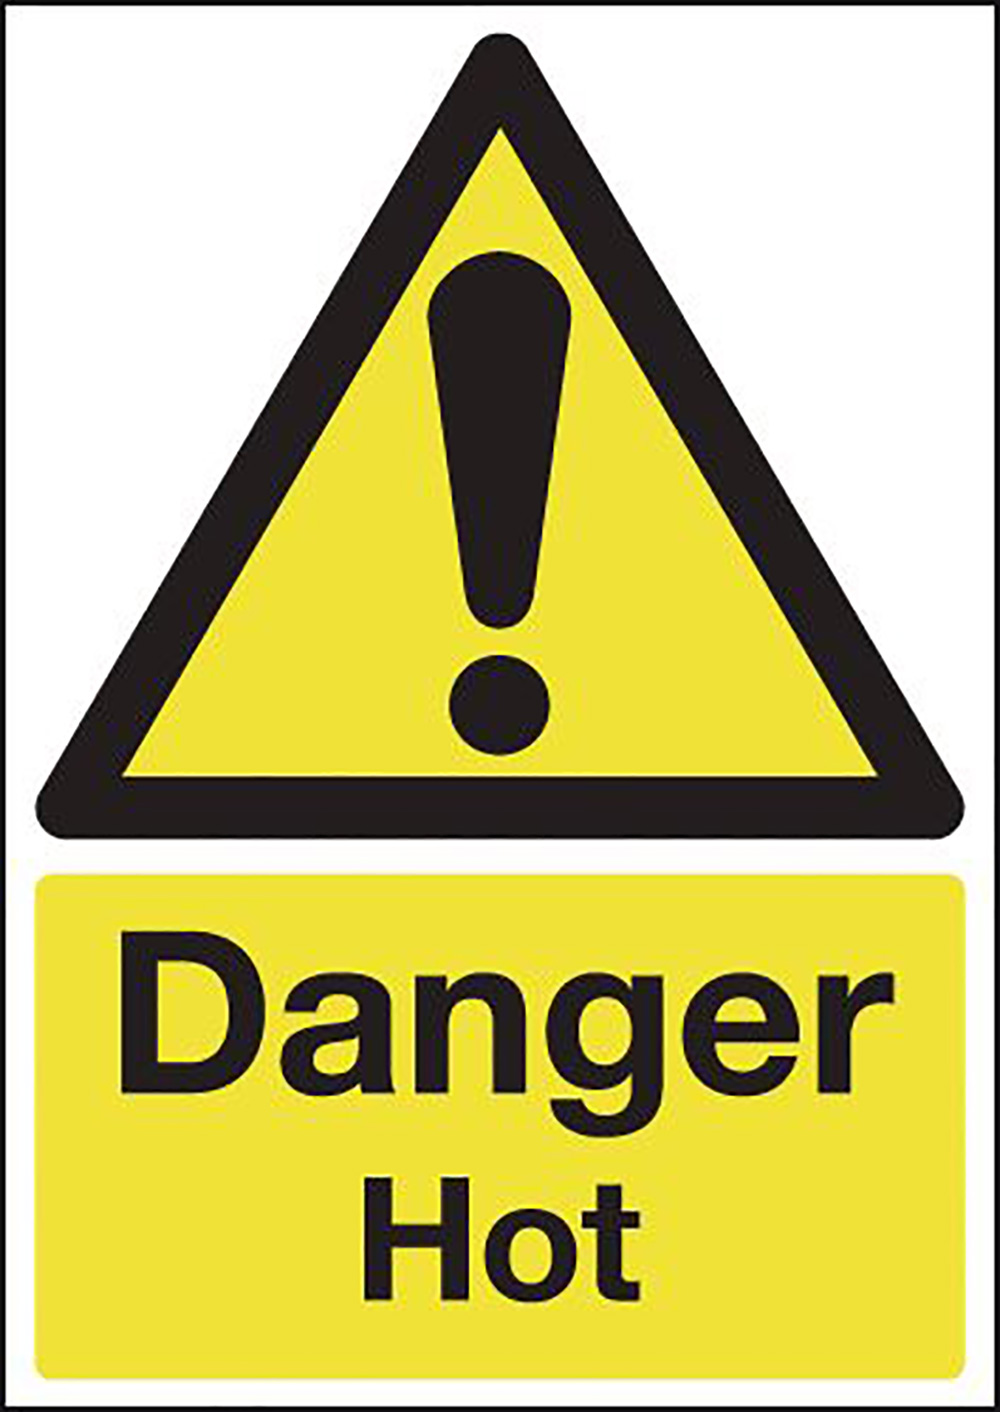 Danger Hot 210x148mm Self Adhesive Vinyl Safety Sign